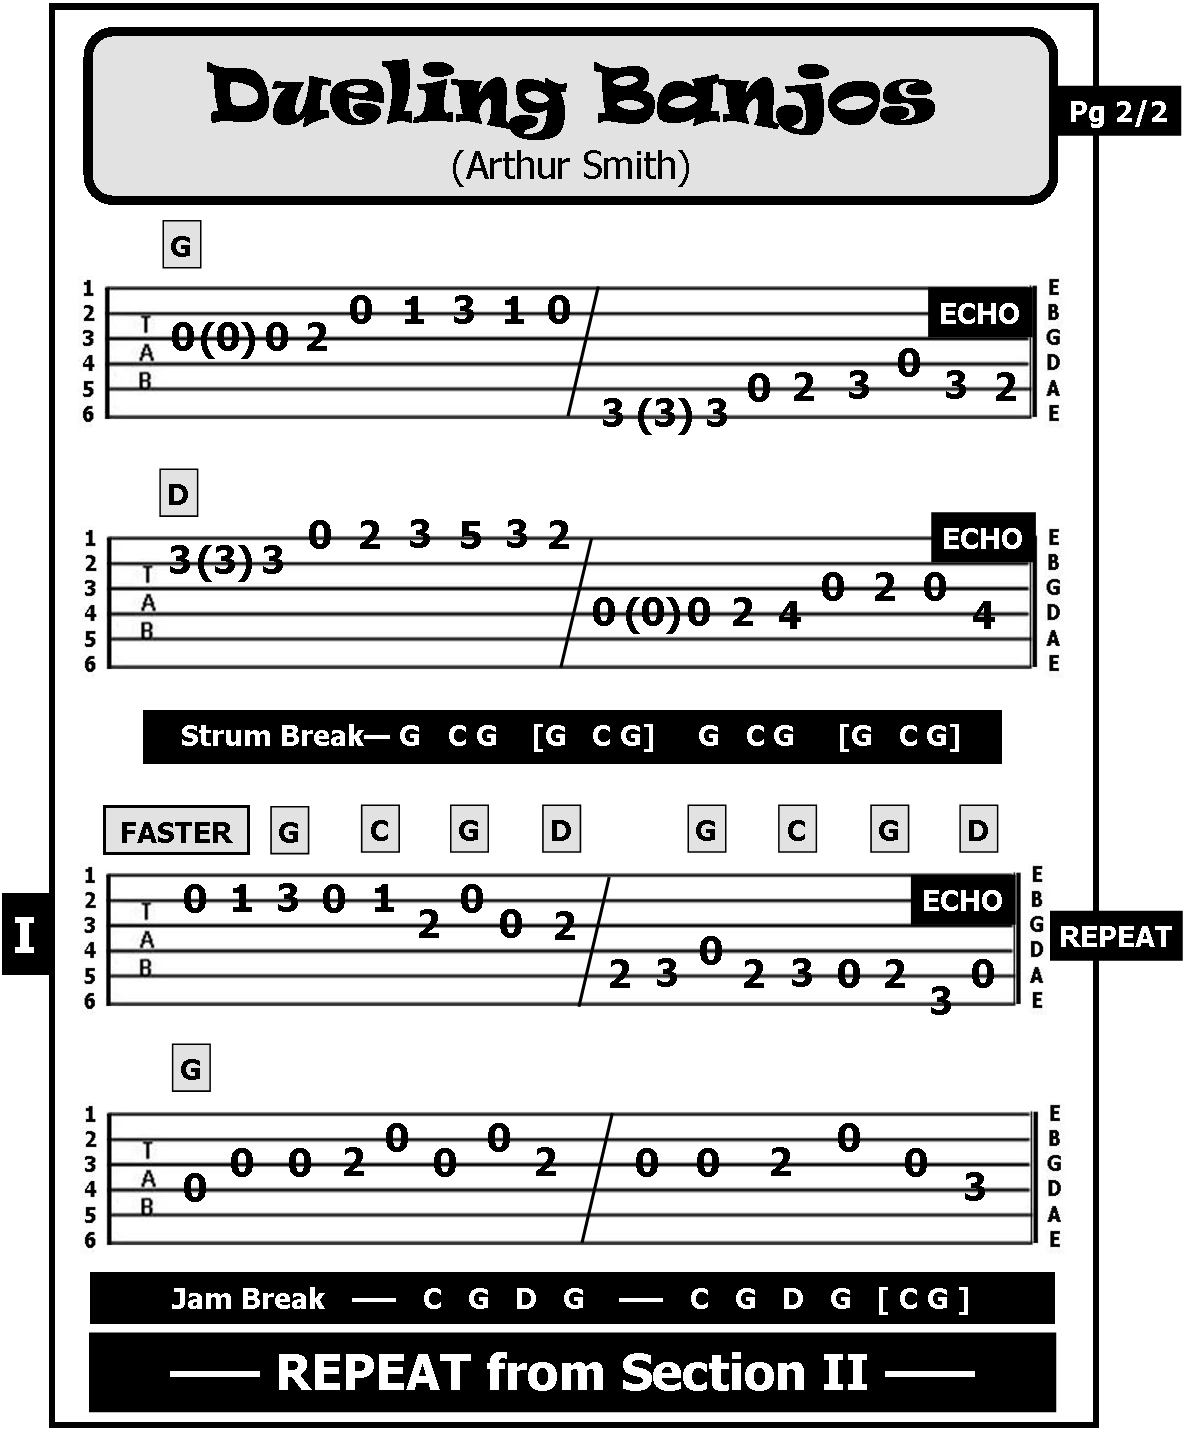 Pin Banjo-chords-for-dueling-banjos on Pinterest